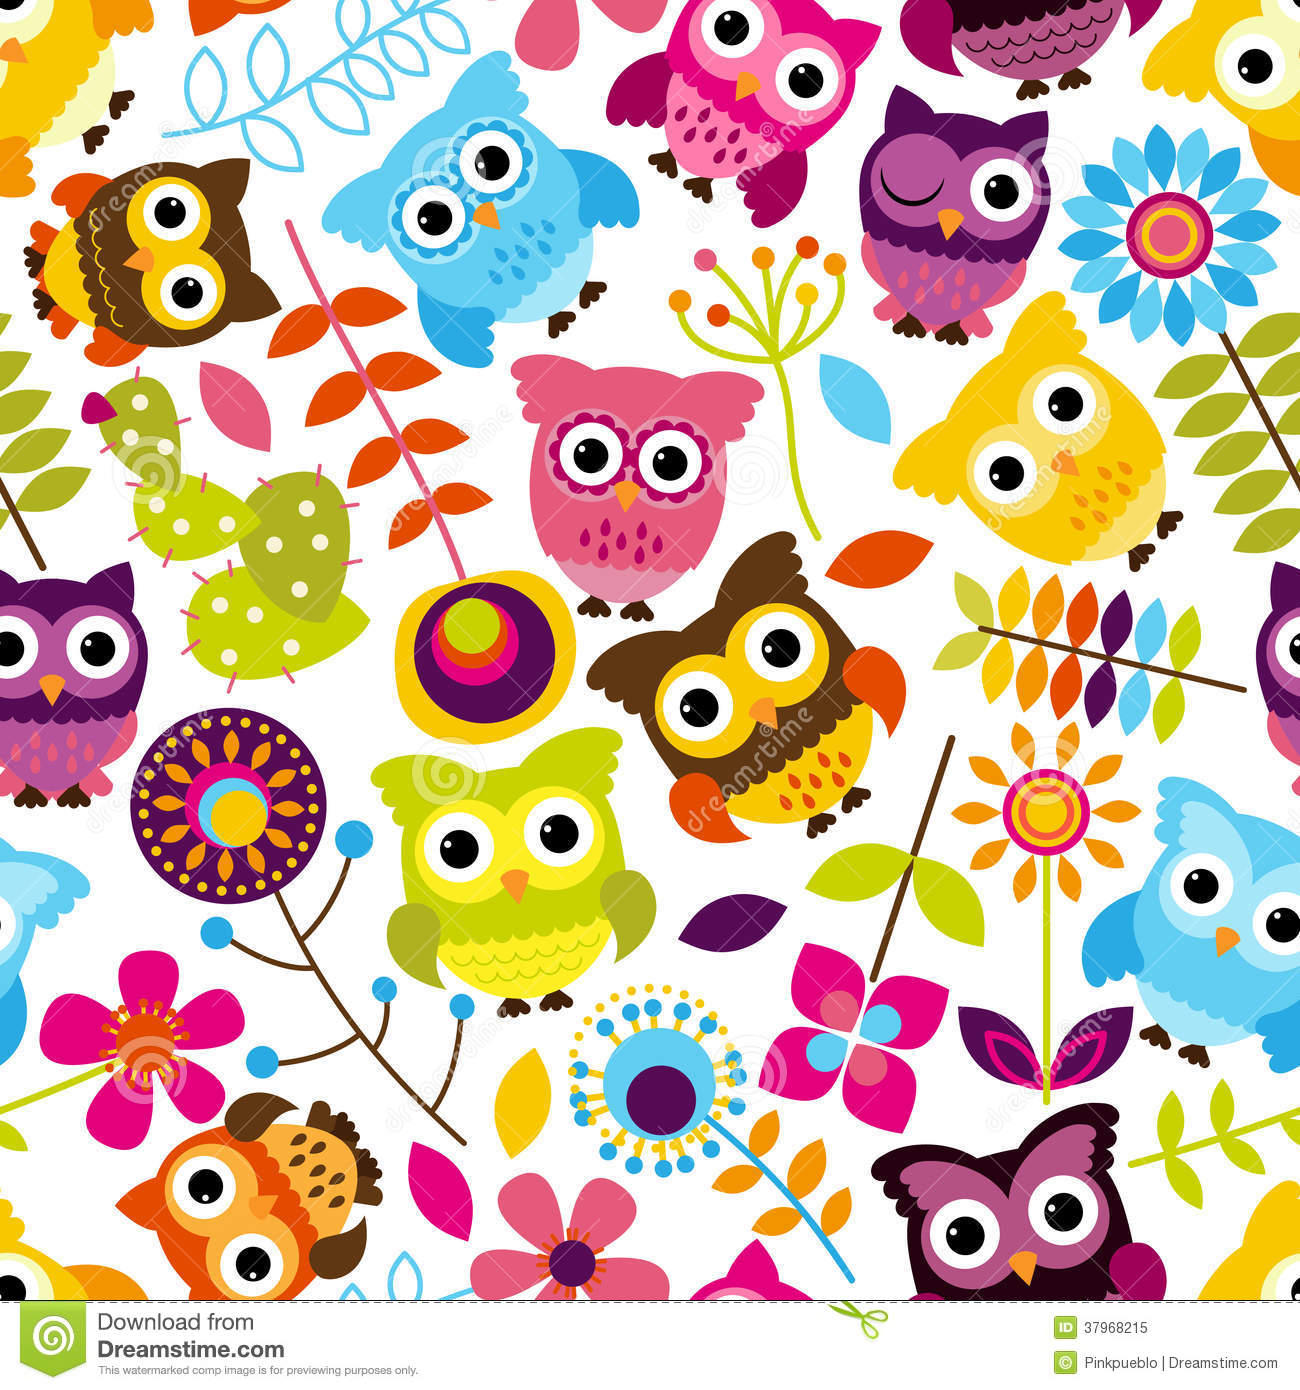 Free Owl Wallpapers: Cute Owl Backgrounds